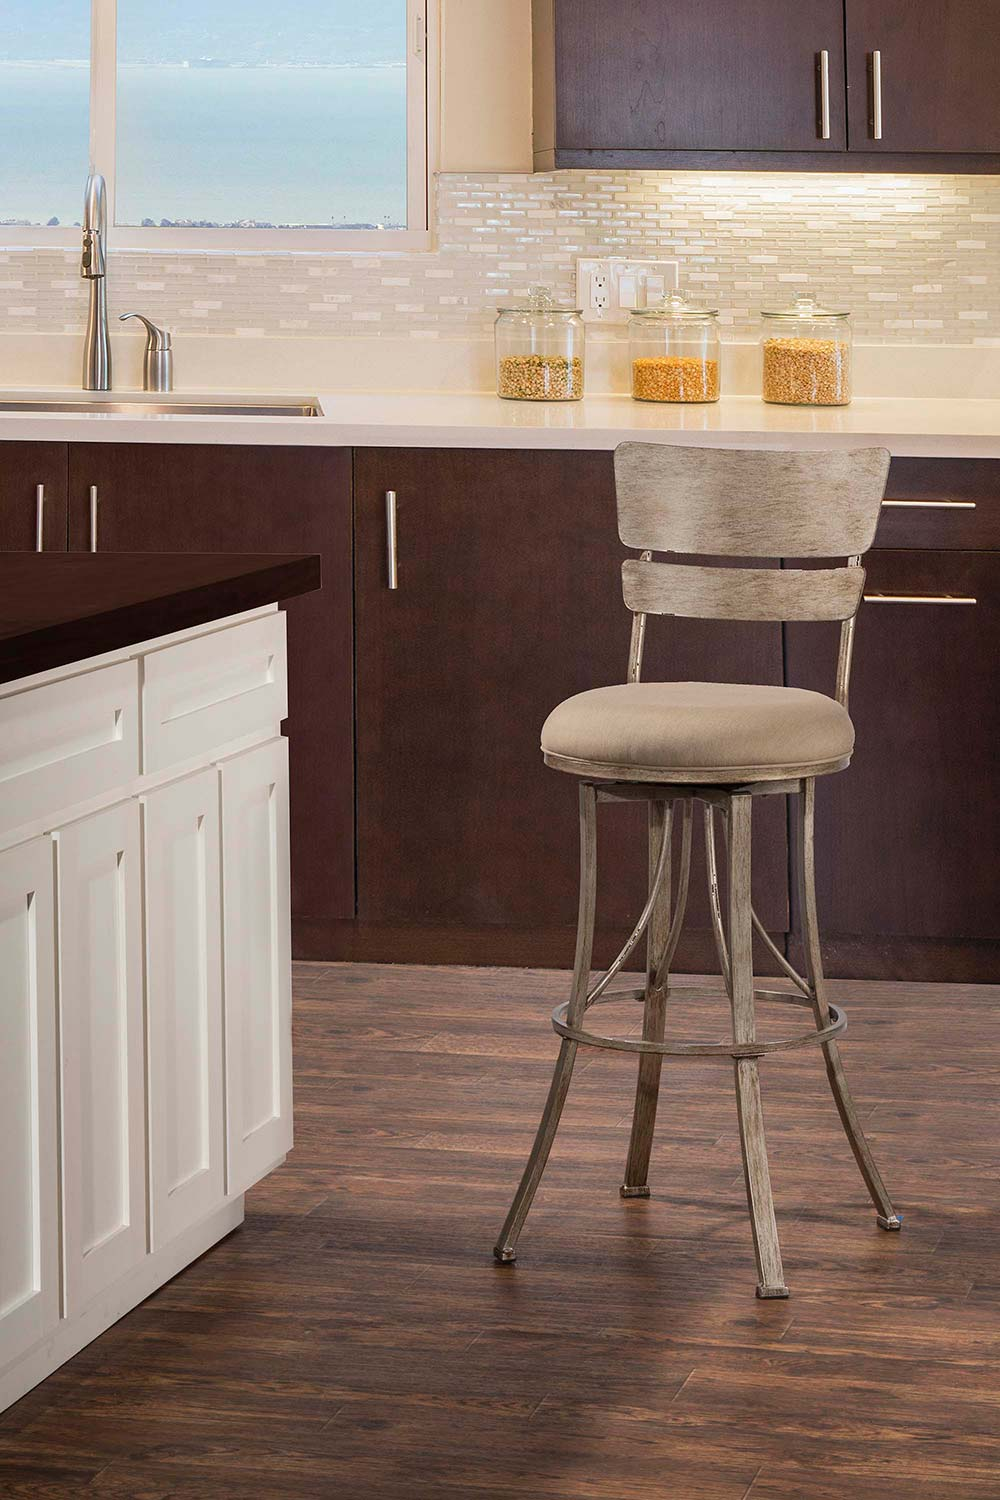 Hillsdale Wakefield Indoor/Outdoor Swivel Counter Stool - Champagne